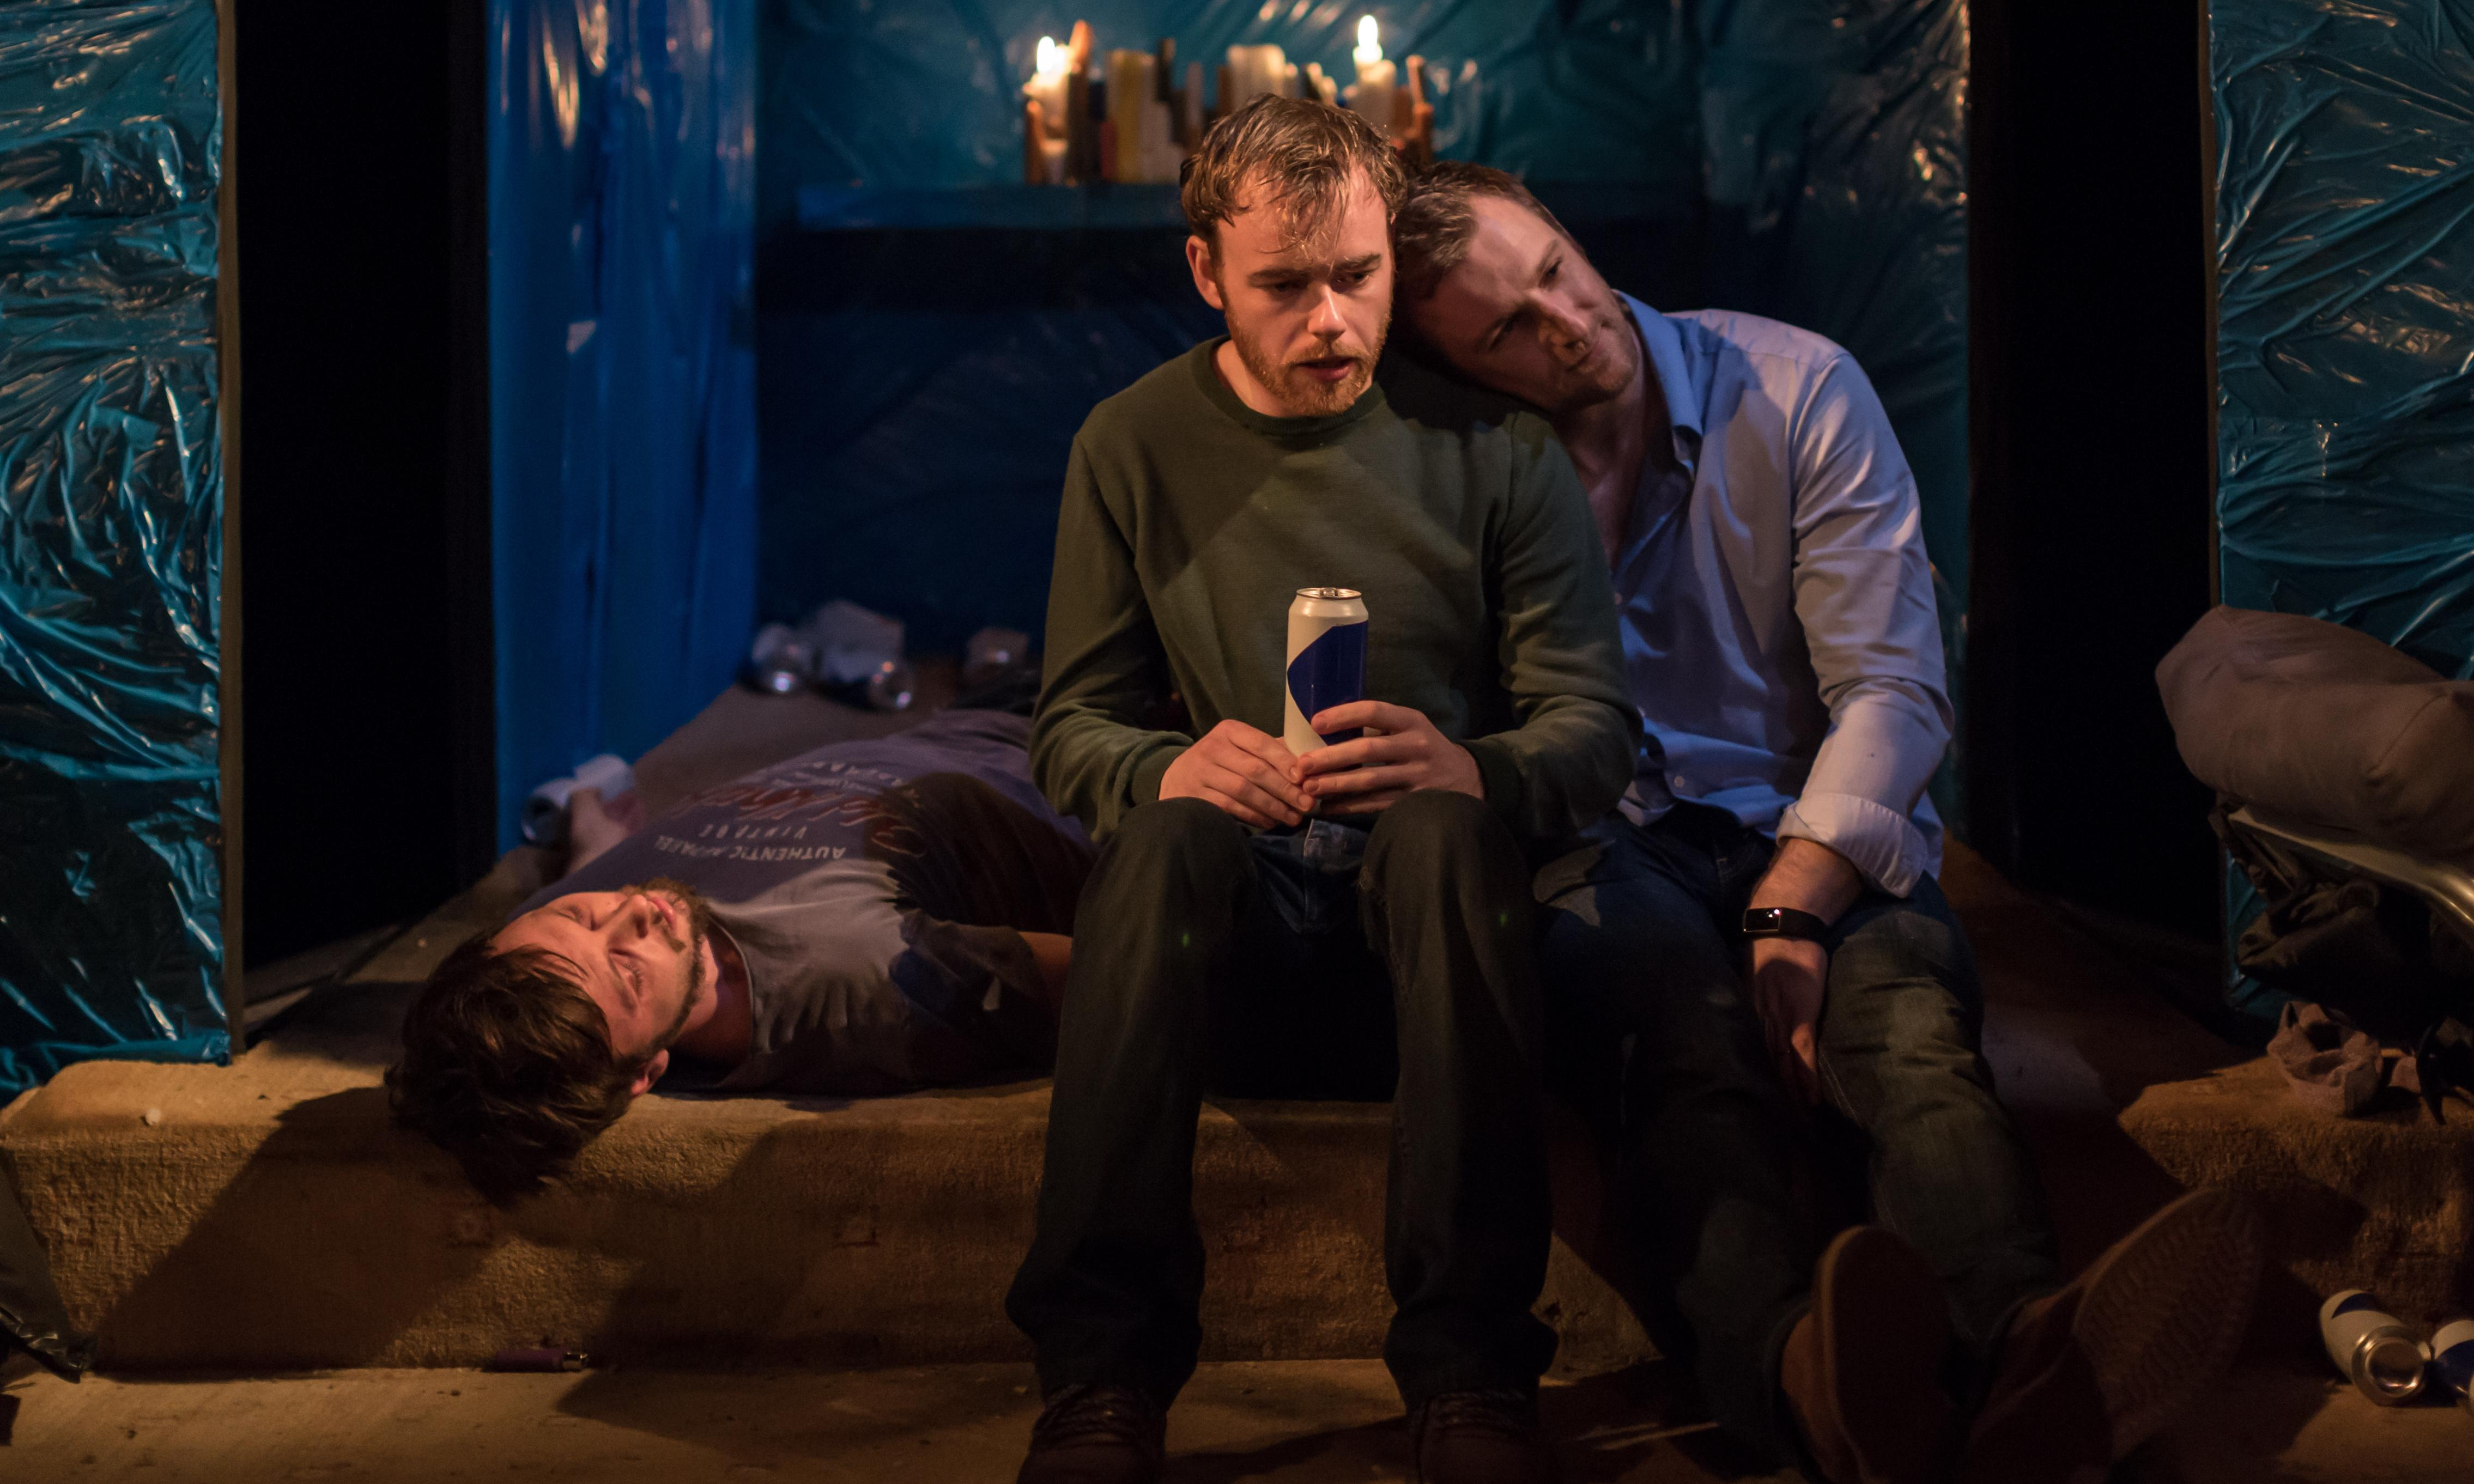 Flights review – lads' drinking game ends in grief and regret